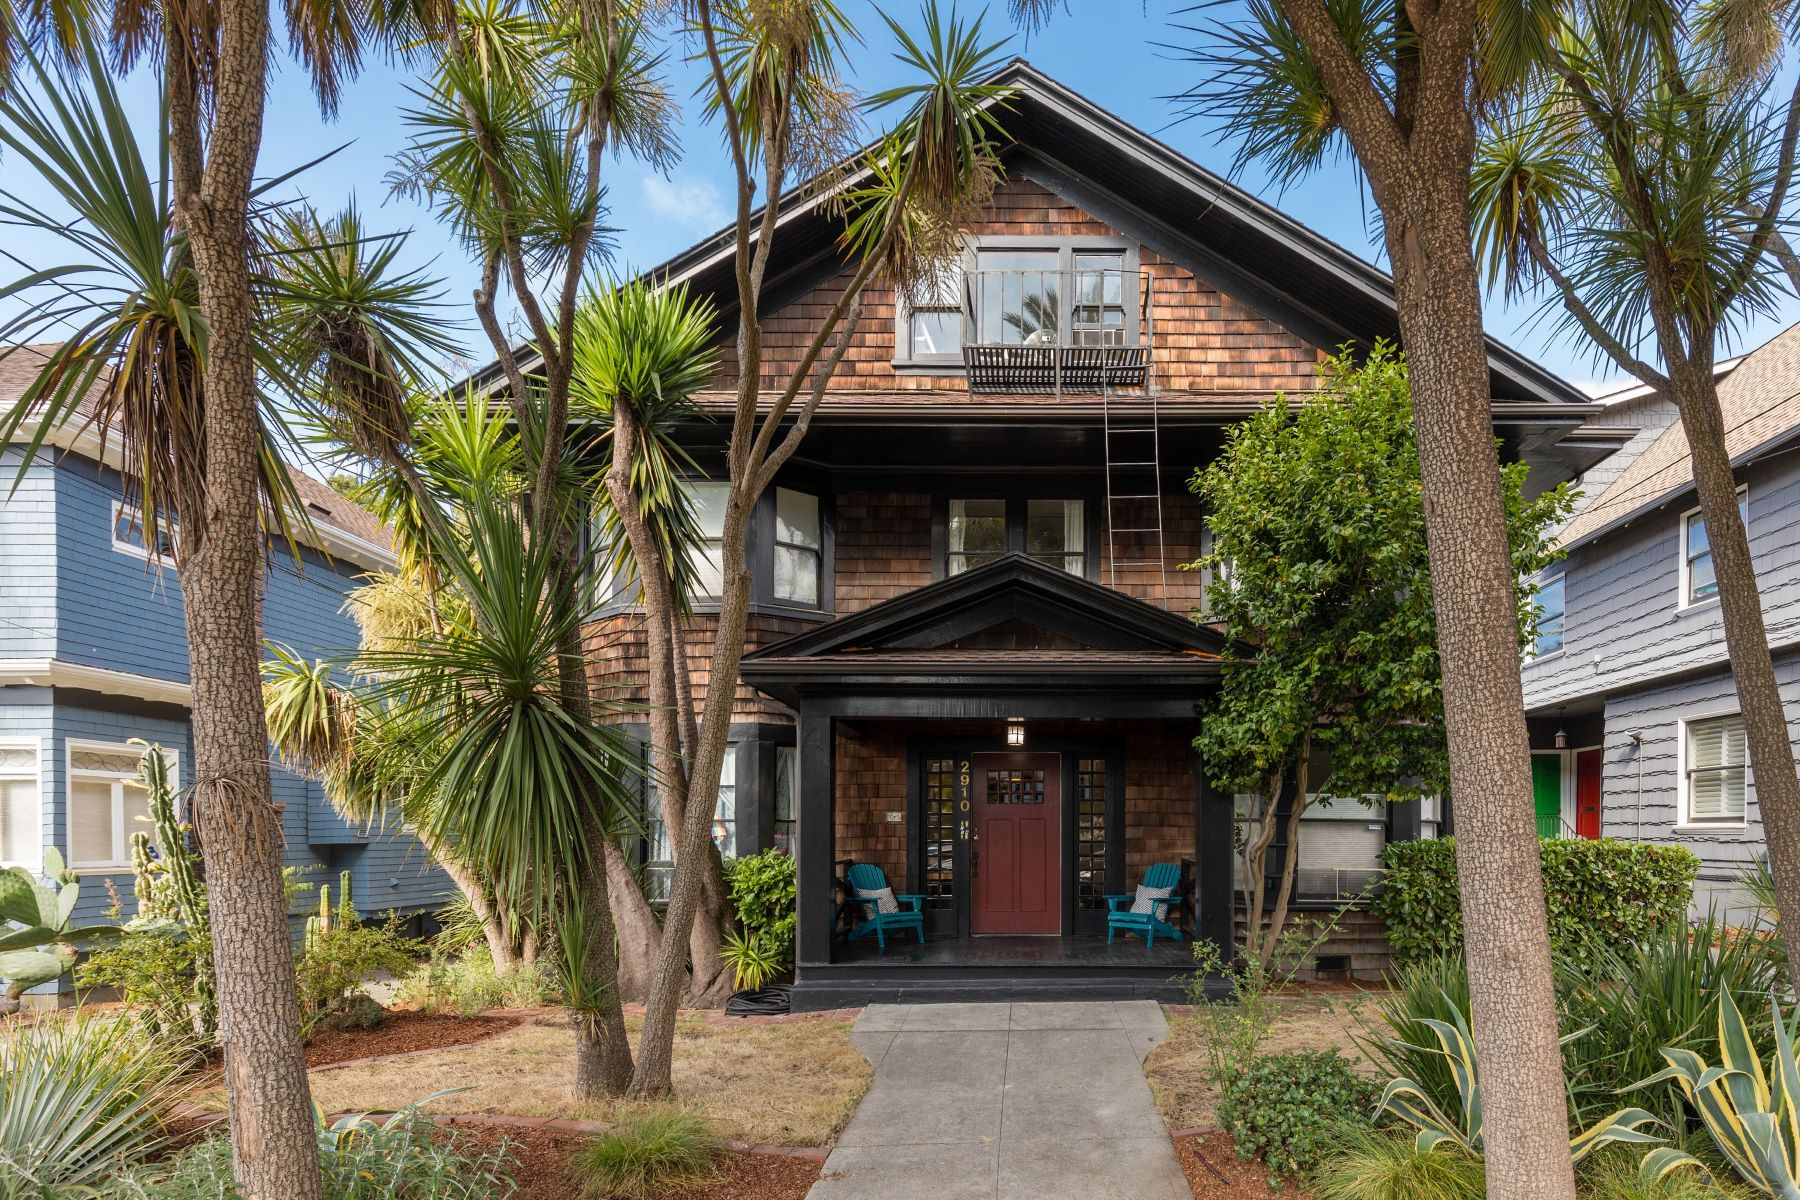 Condominiums のために 売買 アット Charm In The Heart Of Elmwood 2910 Hillegass Avenue #4, Berkeley, カリフォルニア 94705 アメリカ